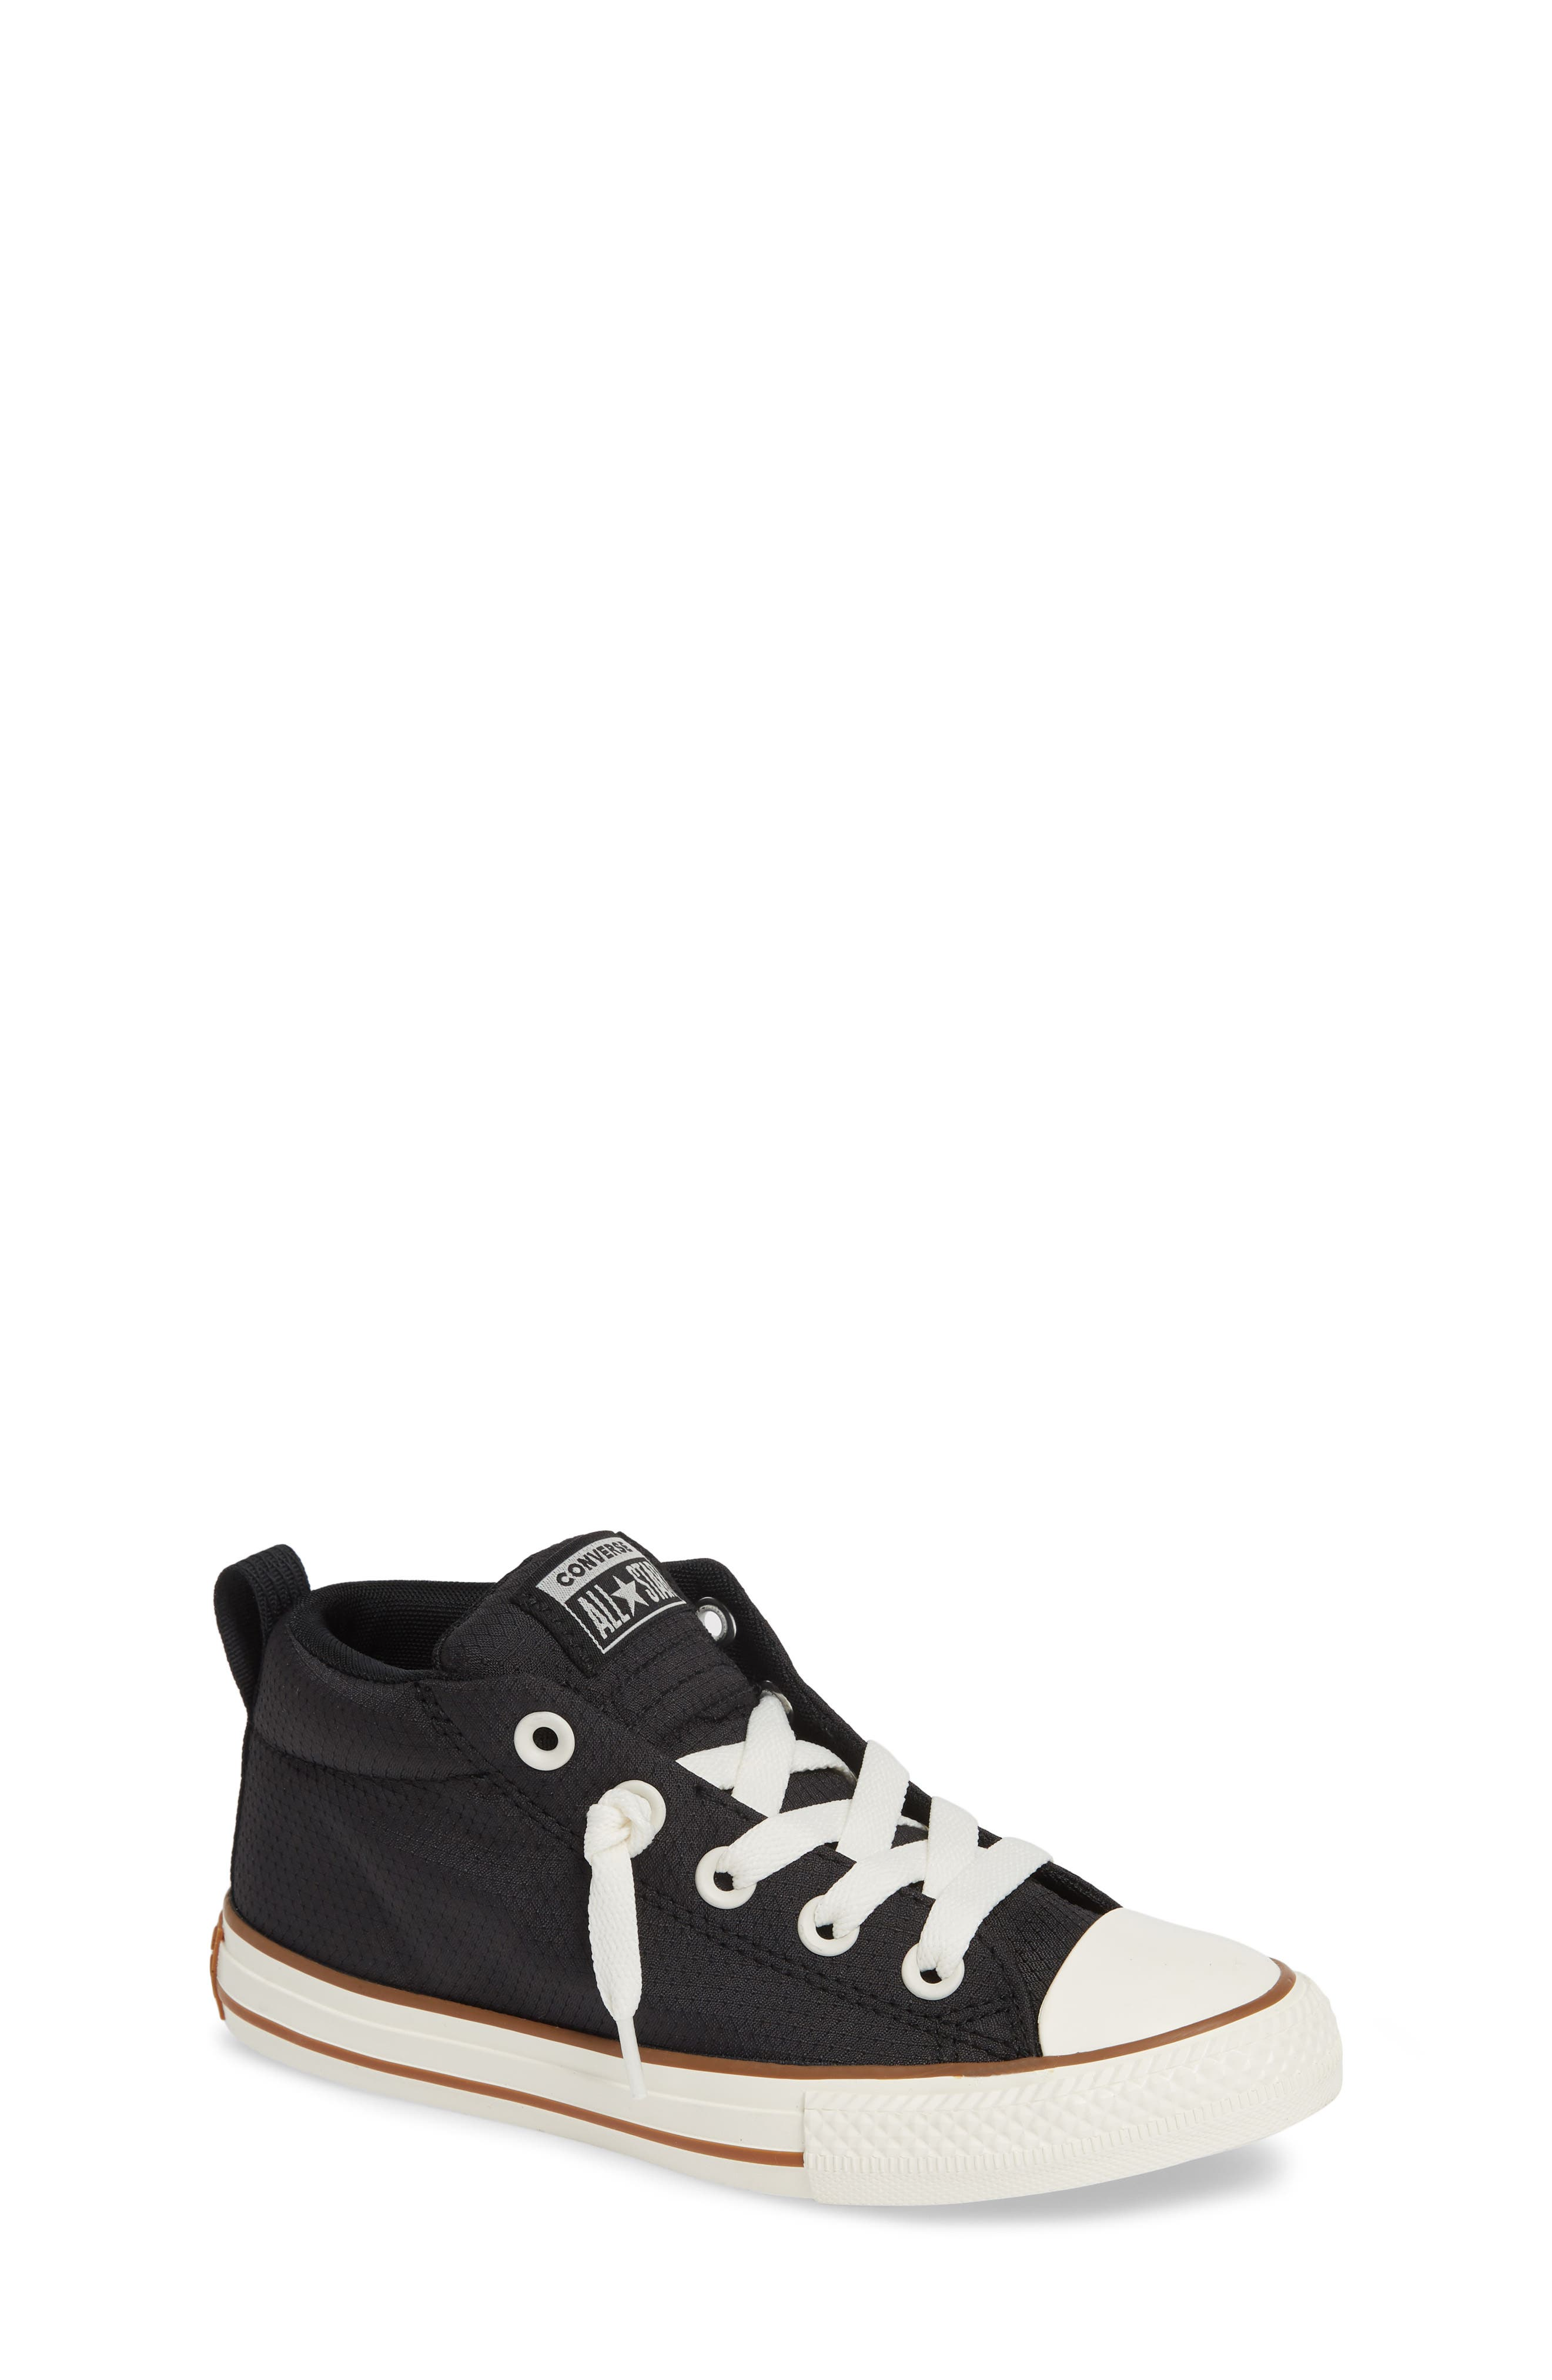 CONVERSE Chuck Taylor<sup>®</sup> All Star<sup>®</sup> Street Mid Top Sneaker, Main, color, 002